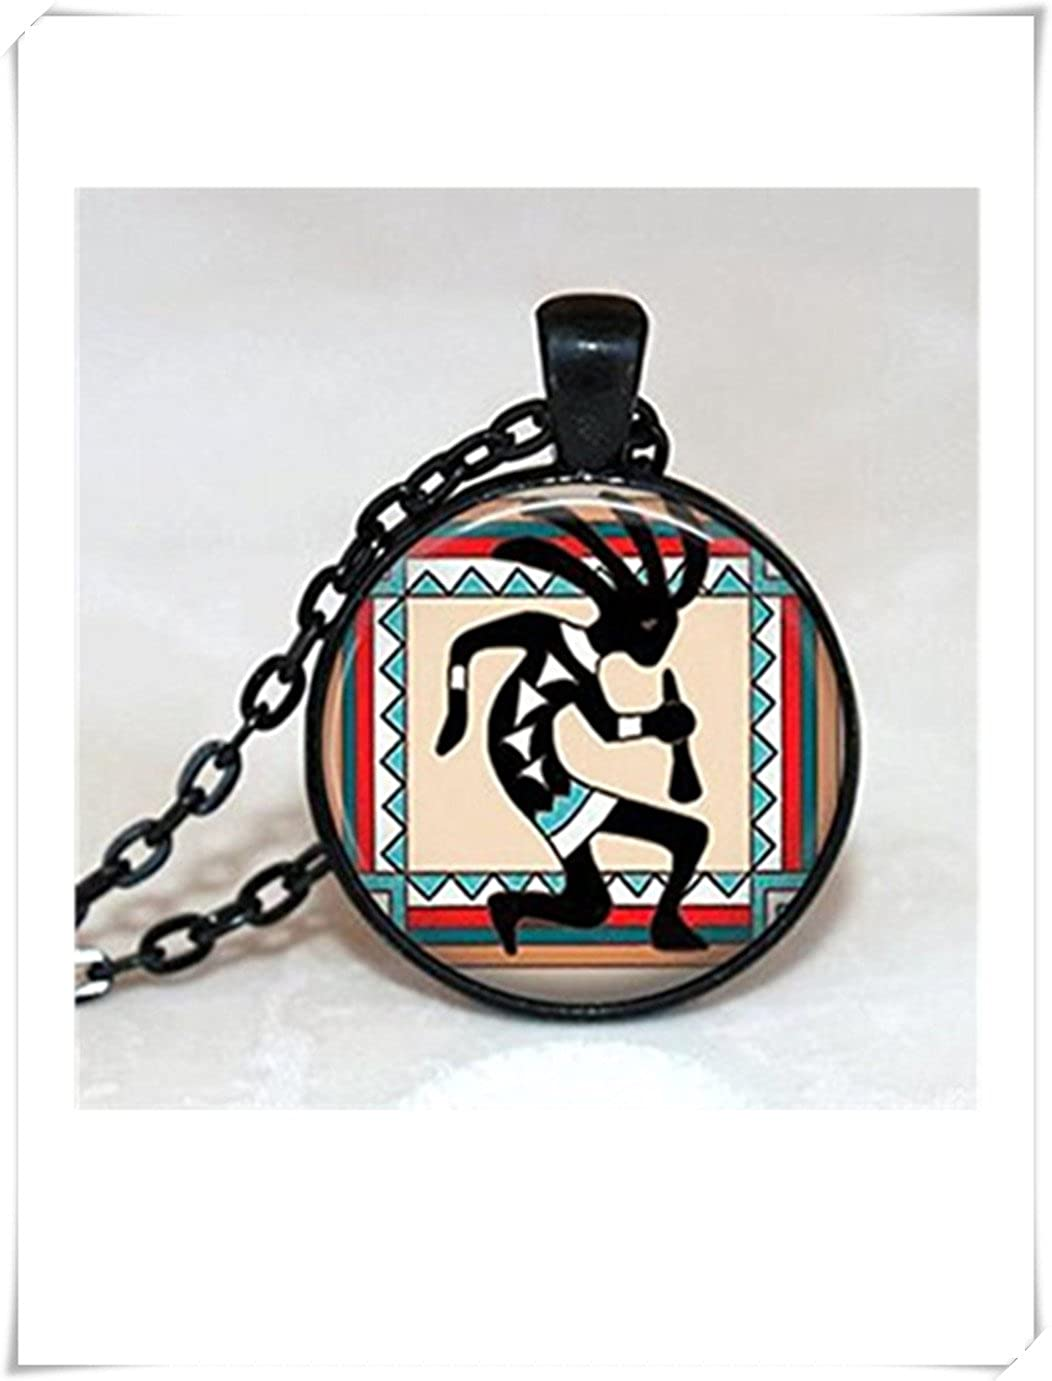 we are Forever family Glass Tile Halskette Native American Jewelry Southwestern Jewelry Kokopelli Jewelry Kokopelli Halskette Glas Fliesen Jewelry Jewelry schwarz